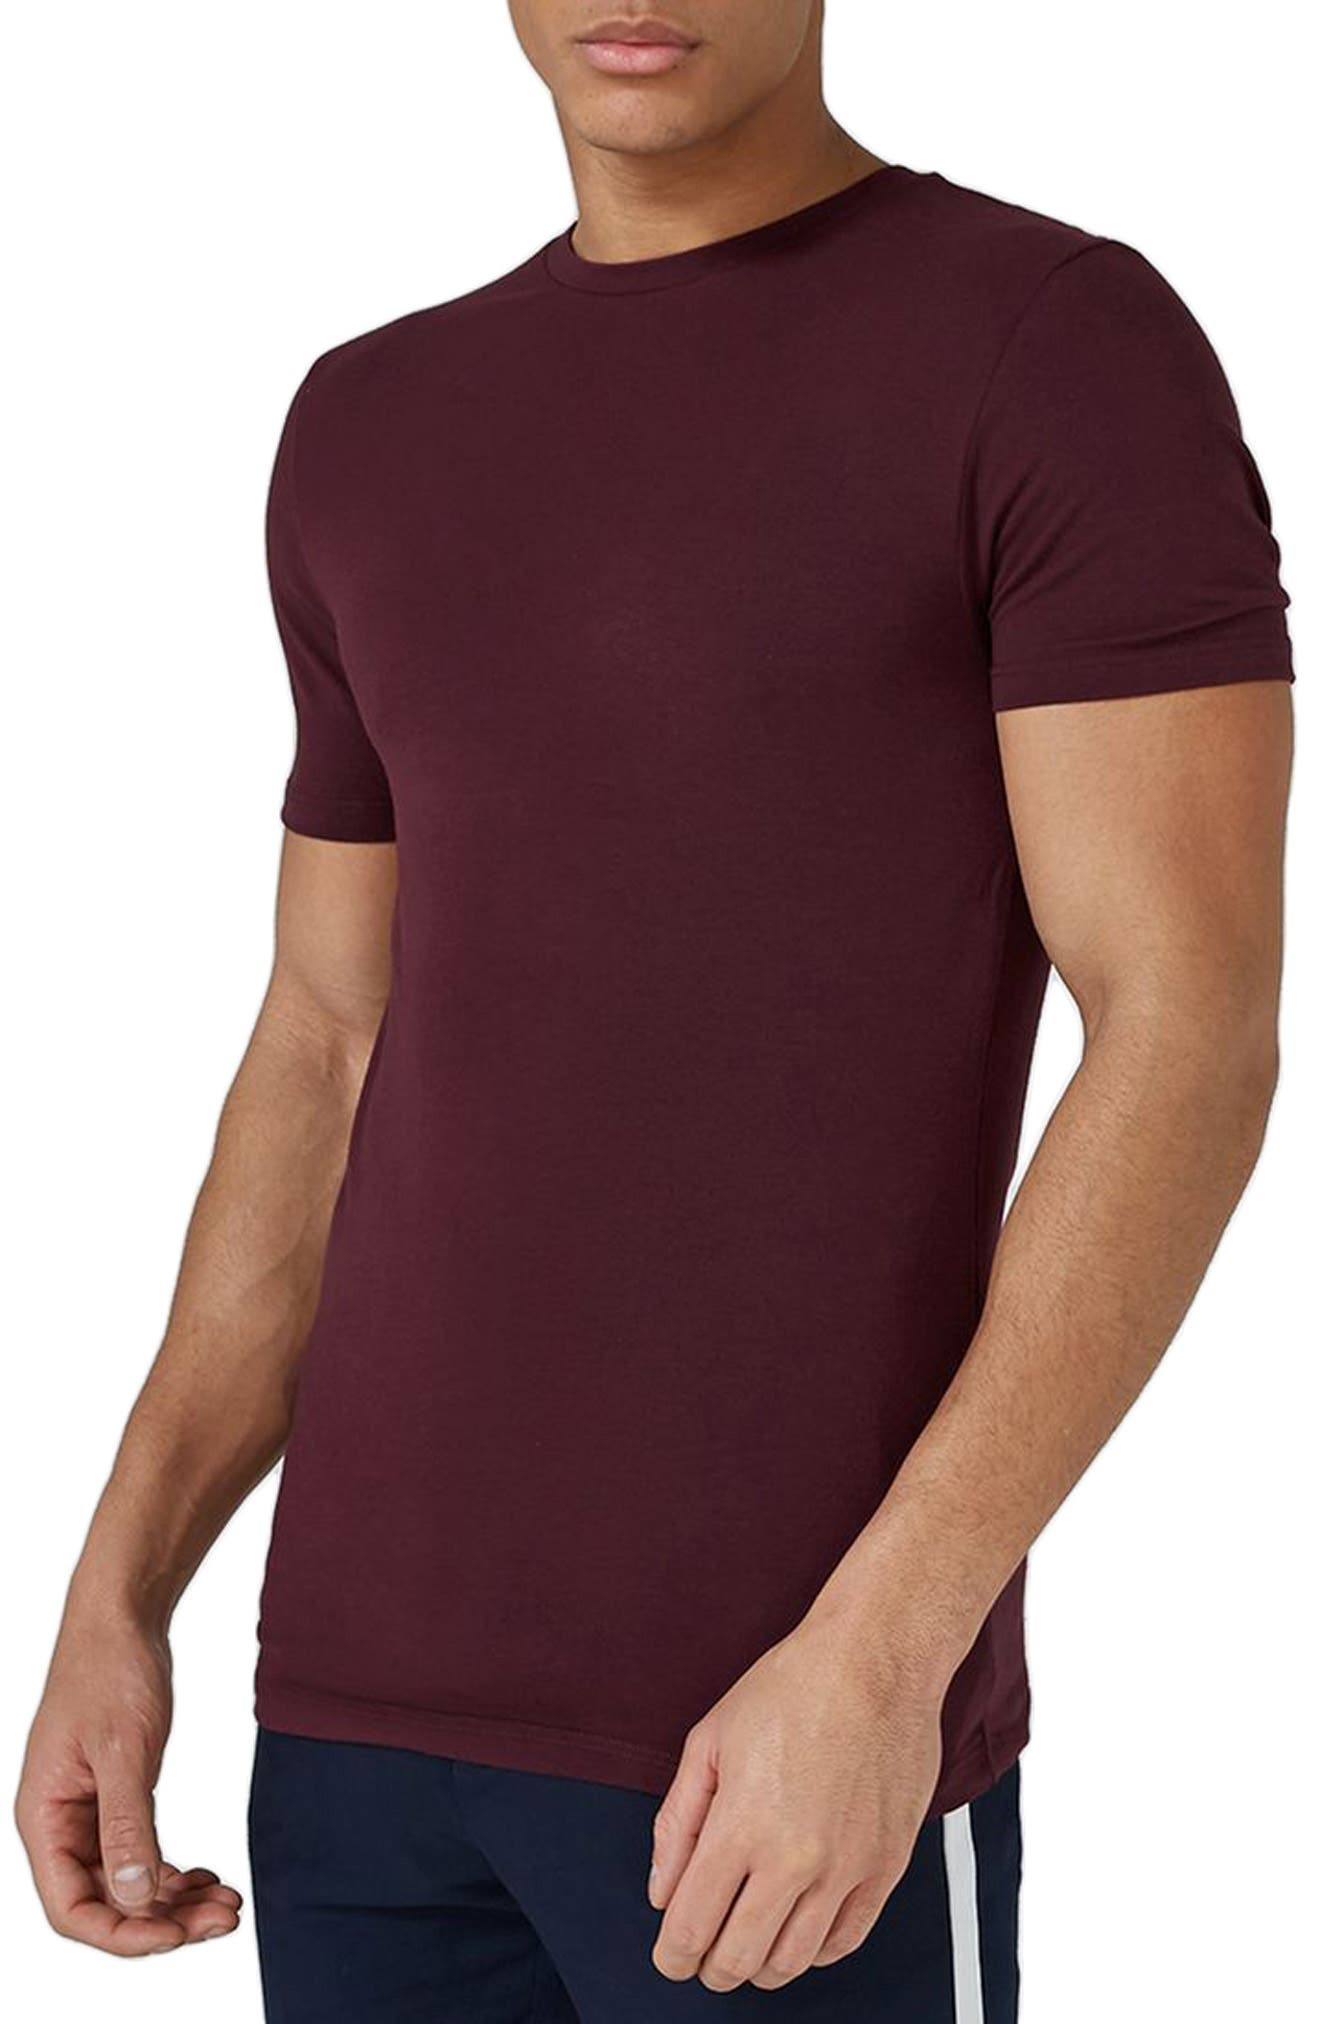 Ultra Muscle Fit T-Shirt,                             Main thumbnail 1, color,                             Burgundy